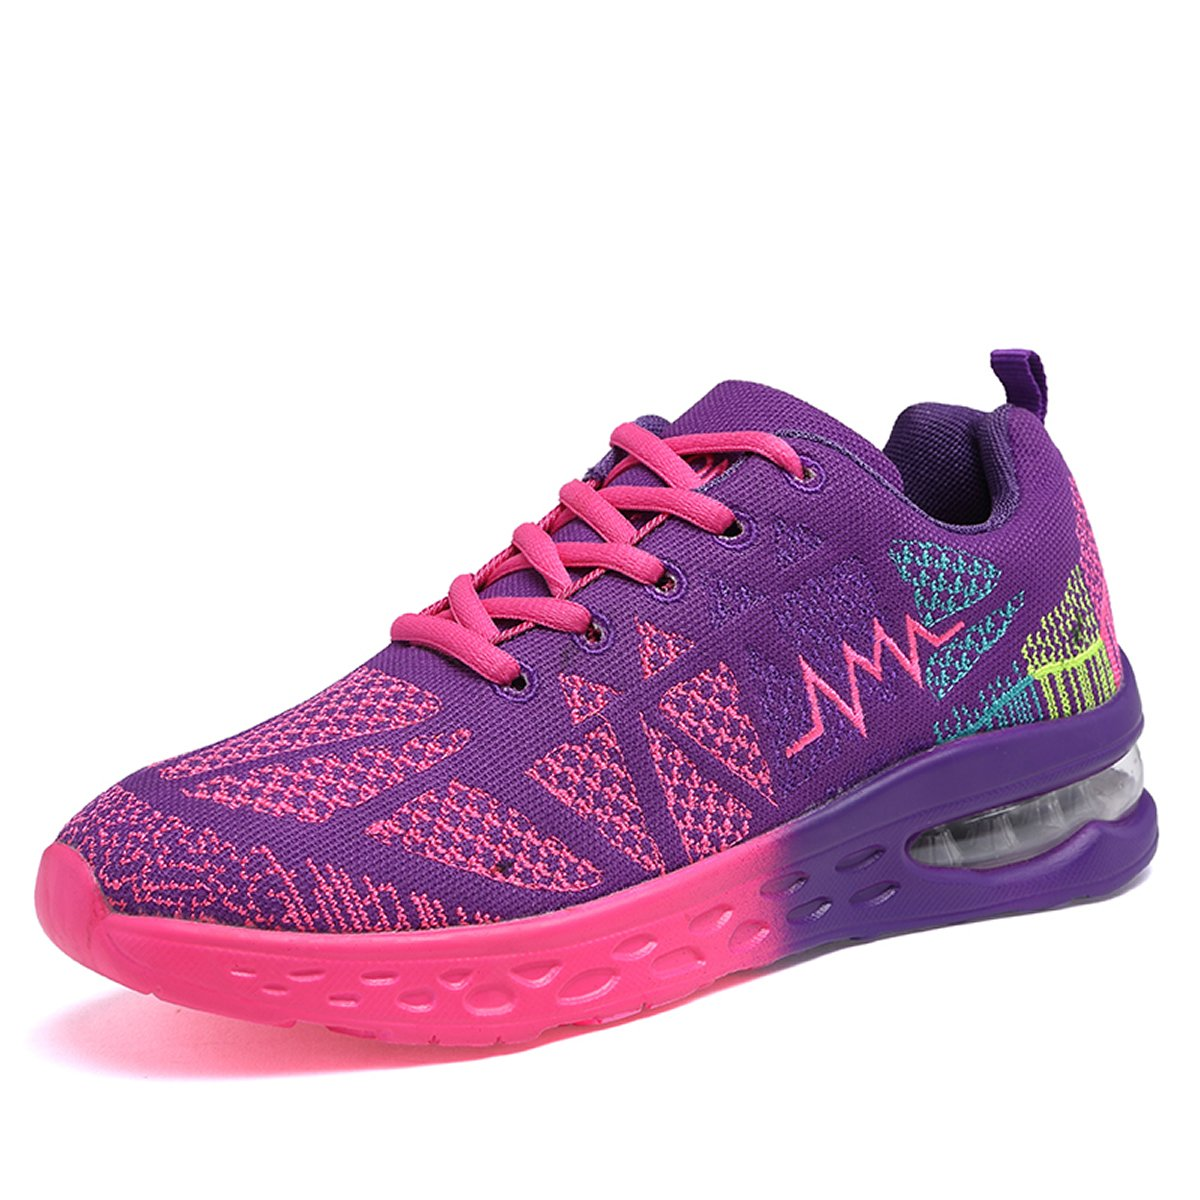 JARLIF Women's Athletic Running Sneakers Fashion Sport Air Fitness Workout Gym Jogging Walking Shoes US5.5-10 B0716RRNCY 8 B(M) US|Purple